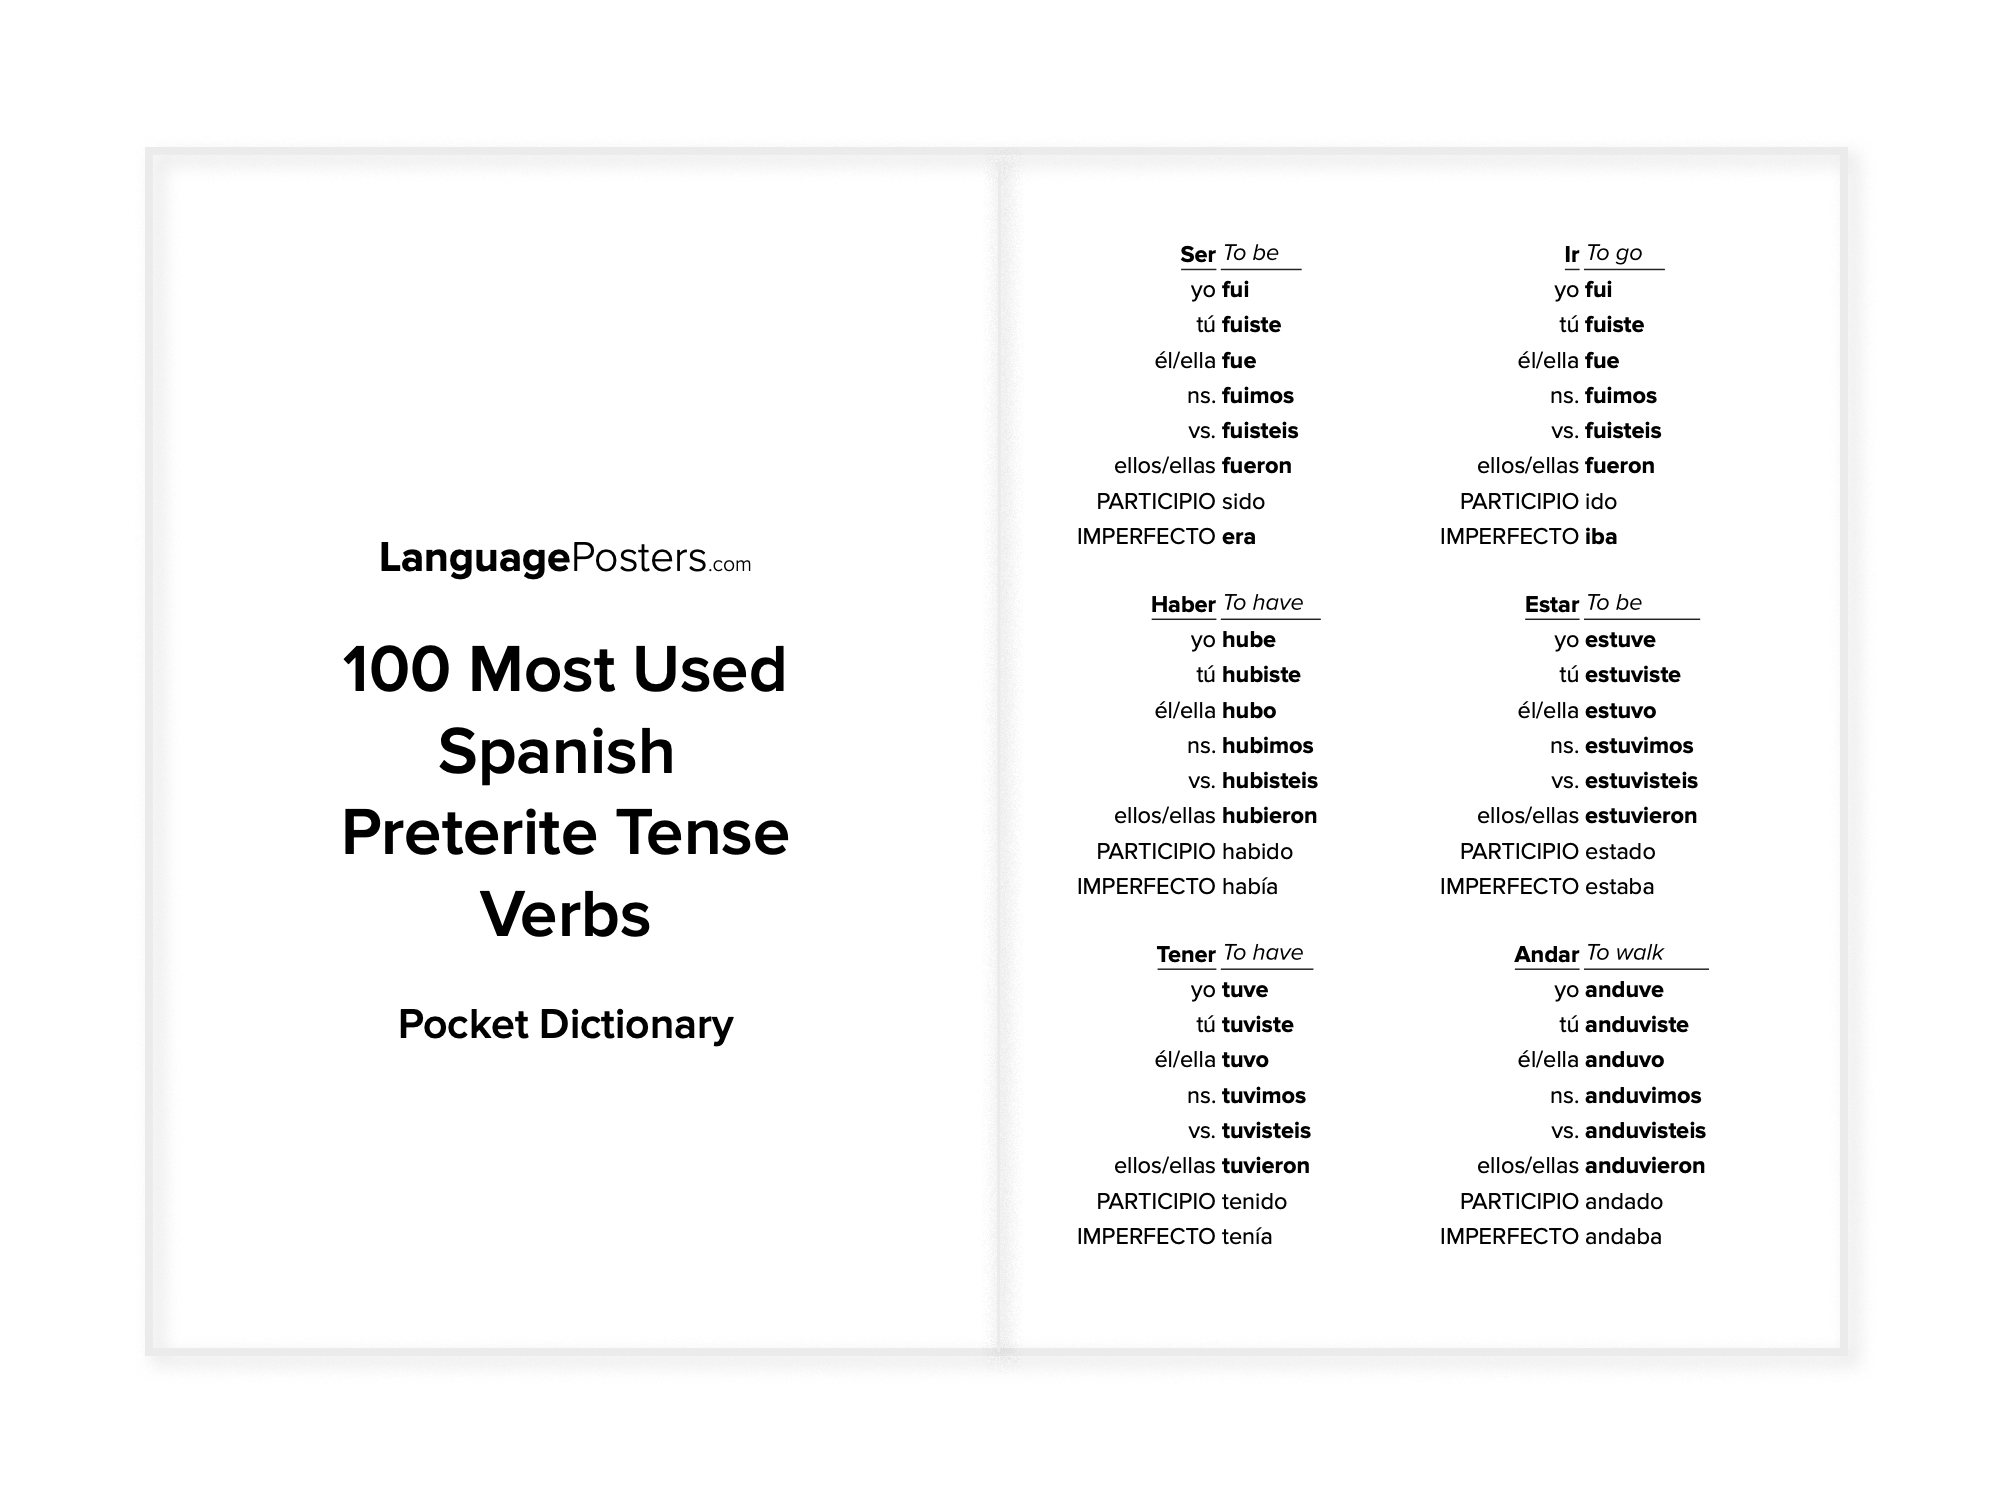 LanguagePosters.com - 100 Most Used Spanish Preterite Tense Verbs Pocket Dictionary Preview